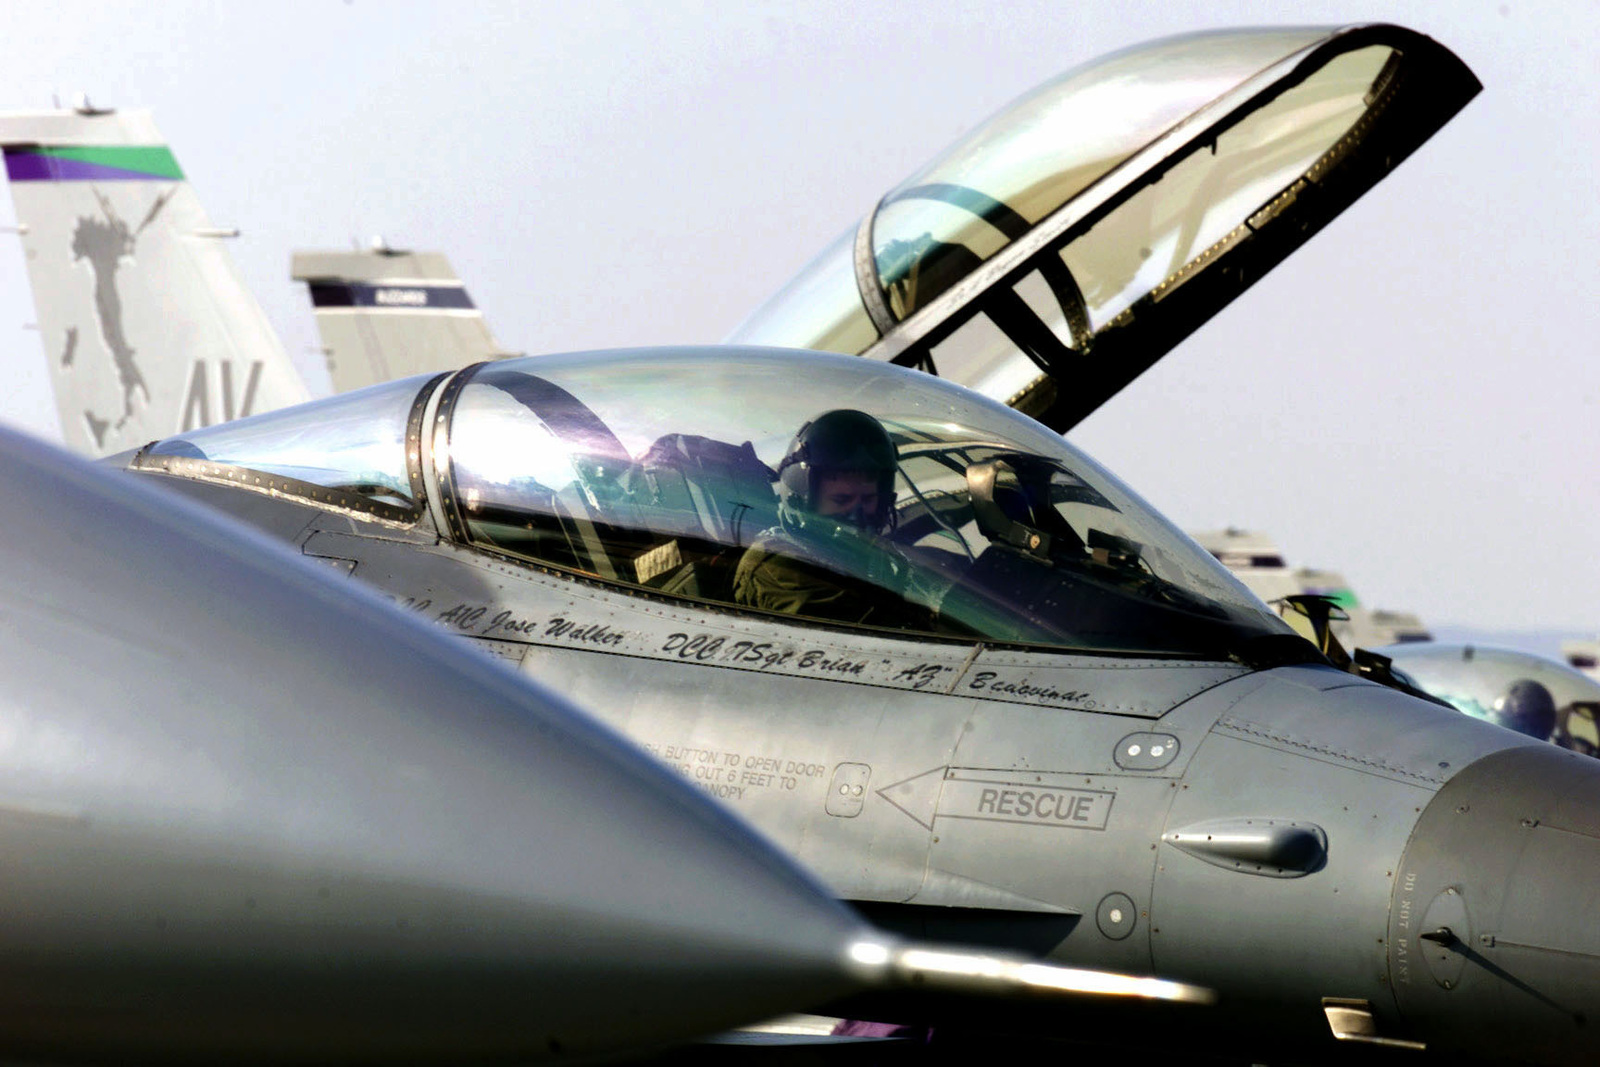 """United States Air Force Captain Dave """"FAHM"""" O' Malley, 510th Fighter Squadron, 31st Fighter Wing, dployed from Aviano Air Base, Itialy, in an F-16C Fighting Falcon prior to launching for the day's first training sorties. Training Exercise Iron Claw, Kuchyna AB, Slovakia, 11 September 2000"""